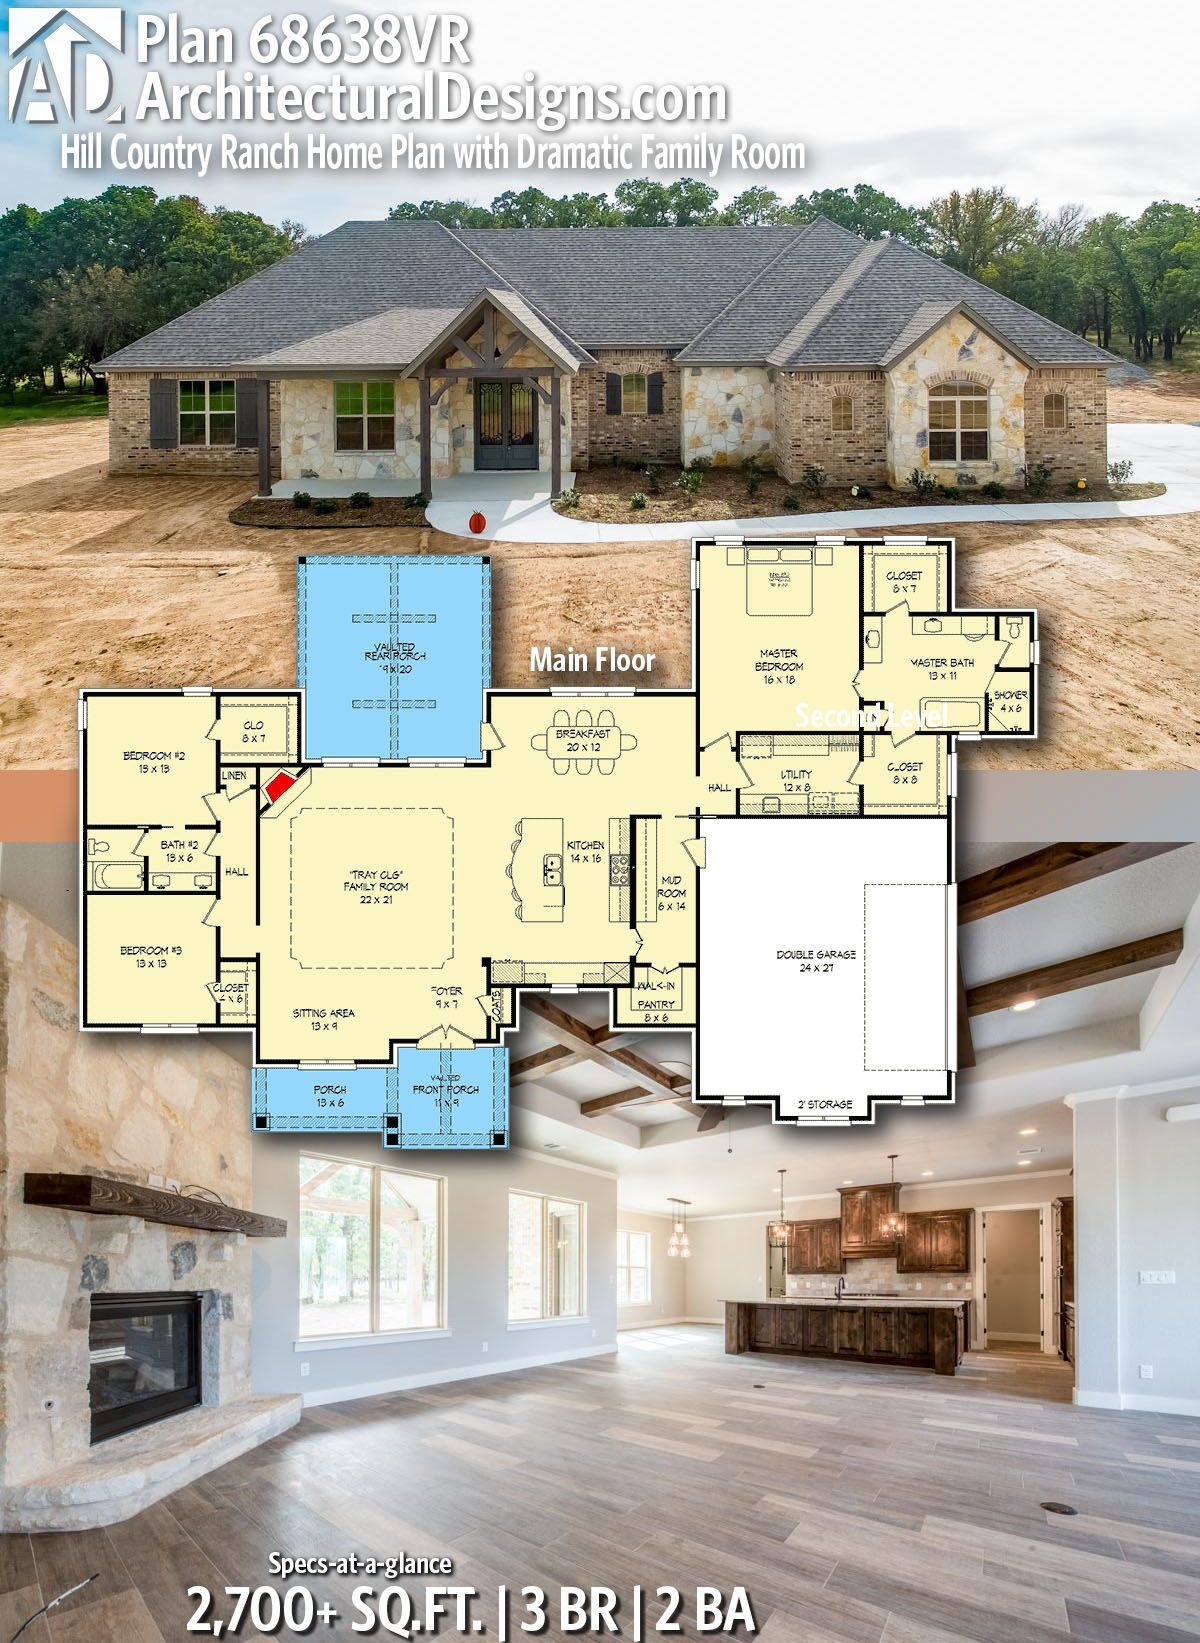 Plan 68638vr Hill Country Ranch Home Plan With Dramatic Family Room Hill Country Homes Country House Plans Ranch House Plans